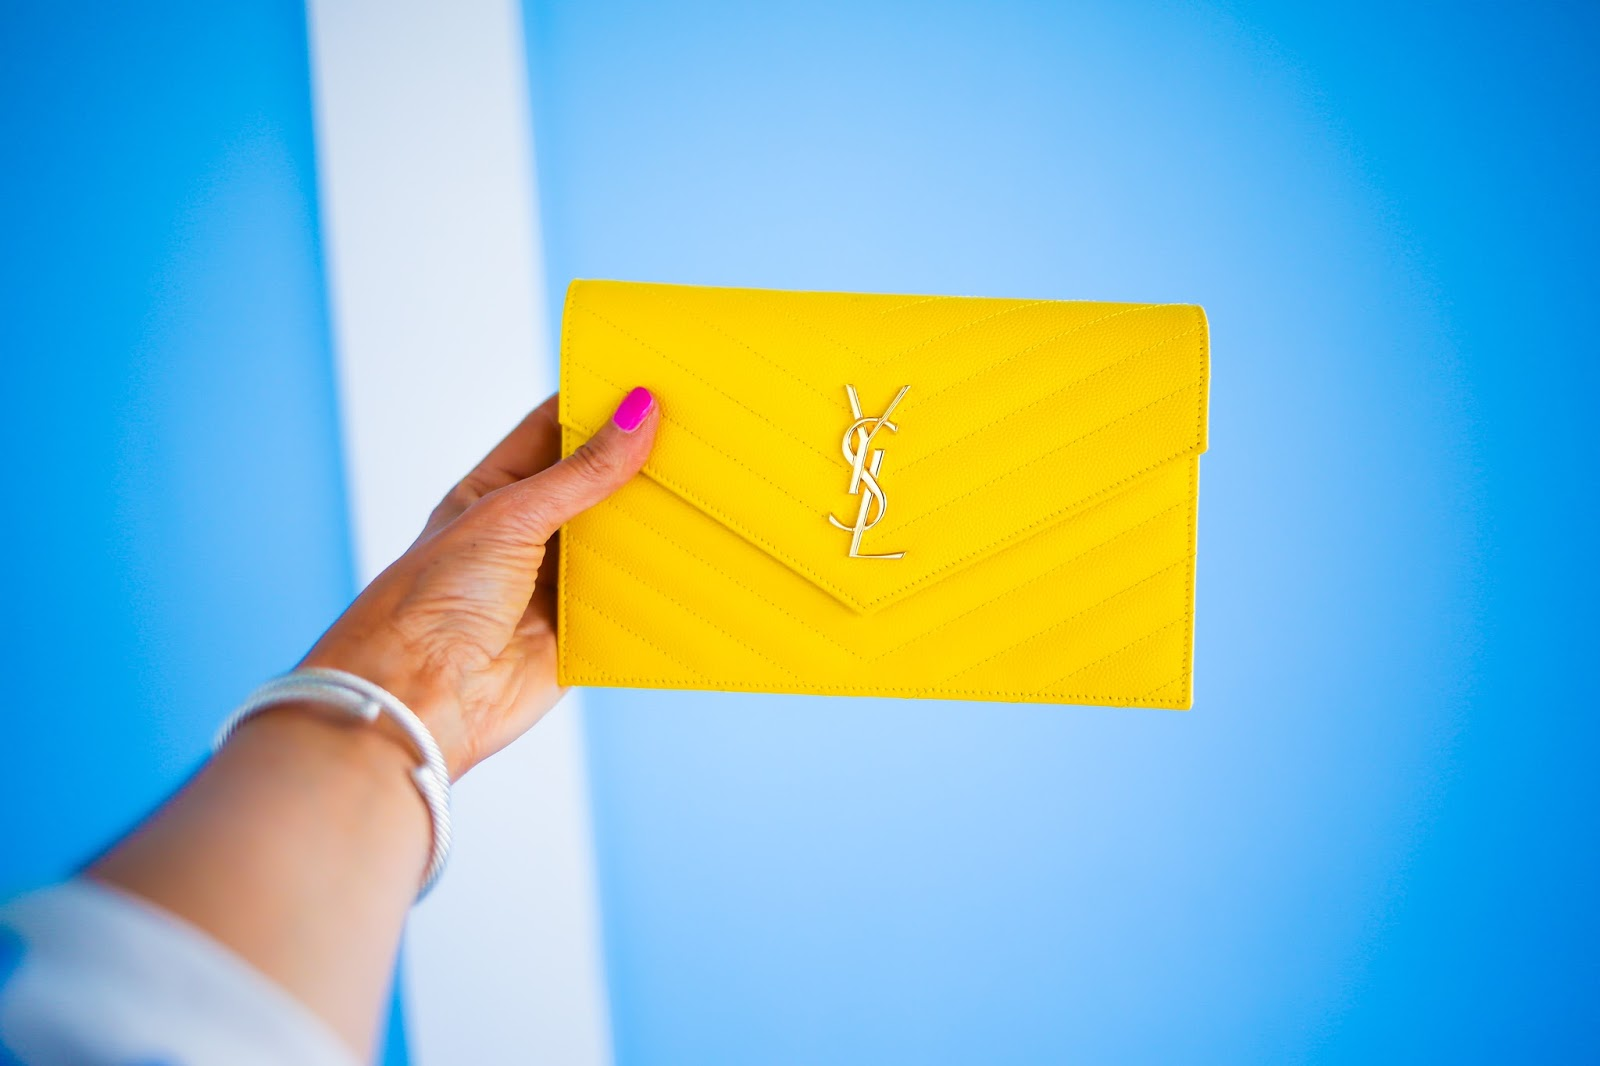 yves saint laurent evening bags - The Sweetest Thing: Bright Summery Colors + The Wedges I'm Wearing ...